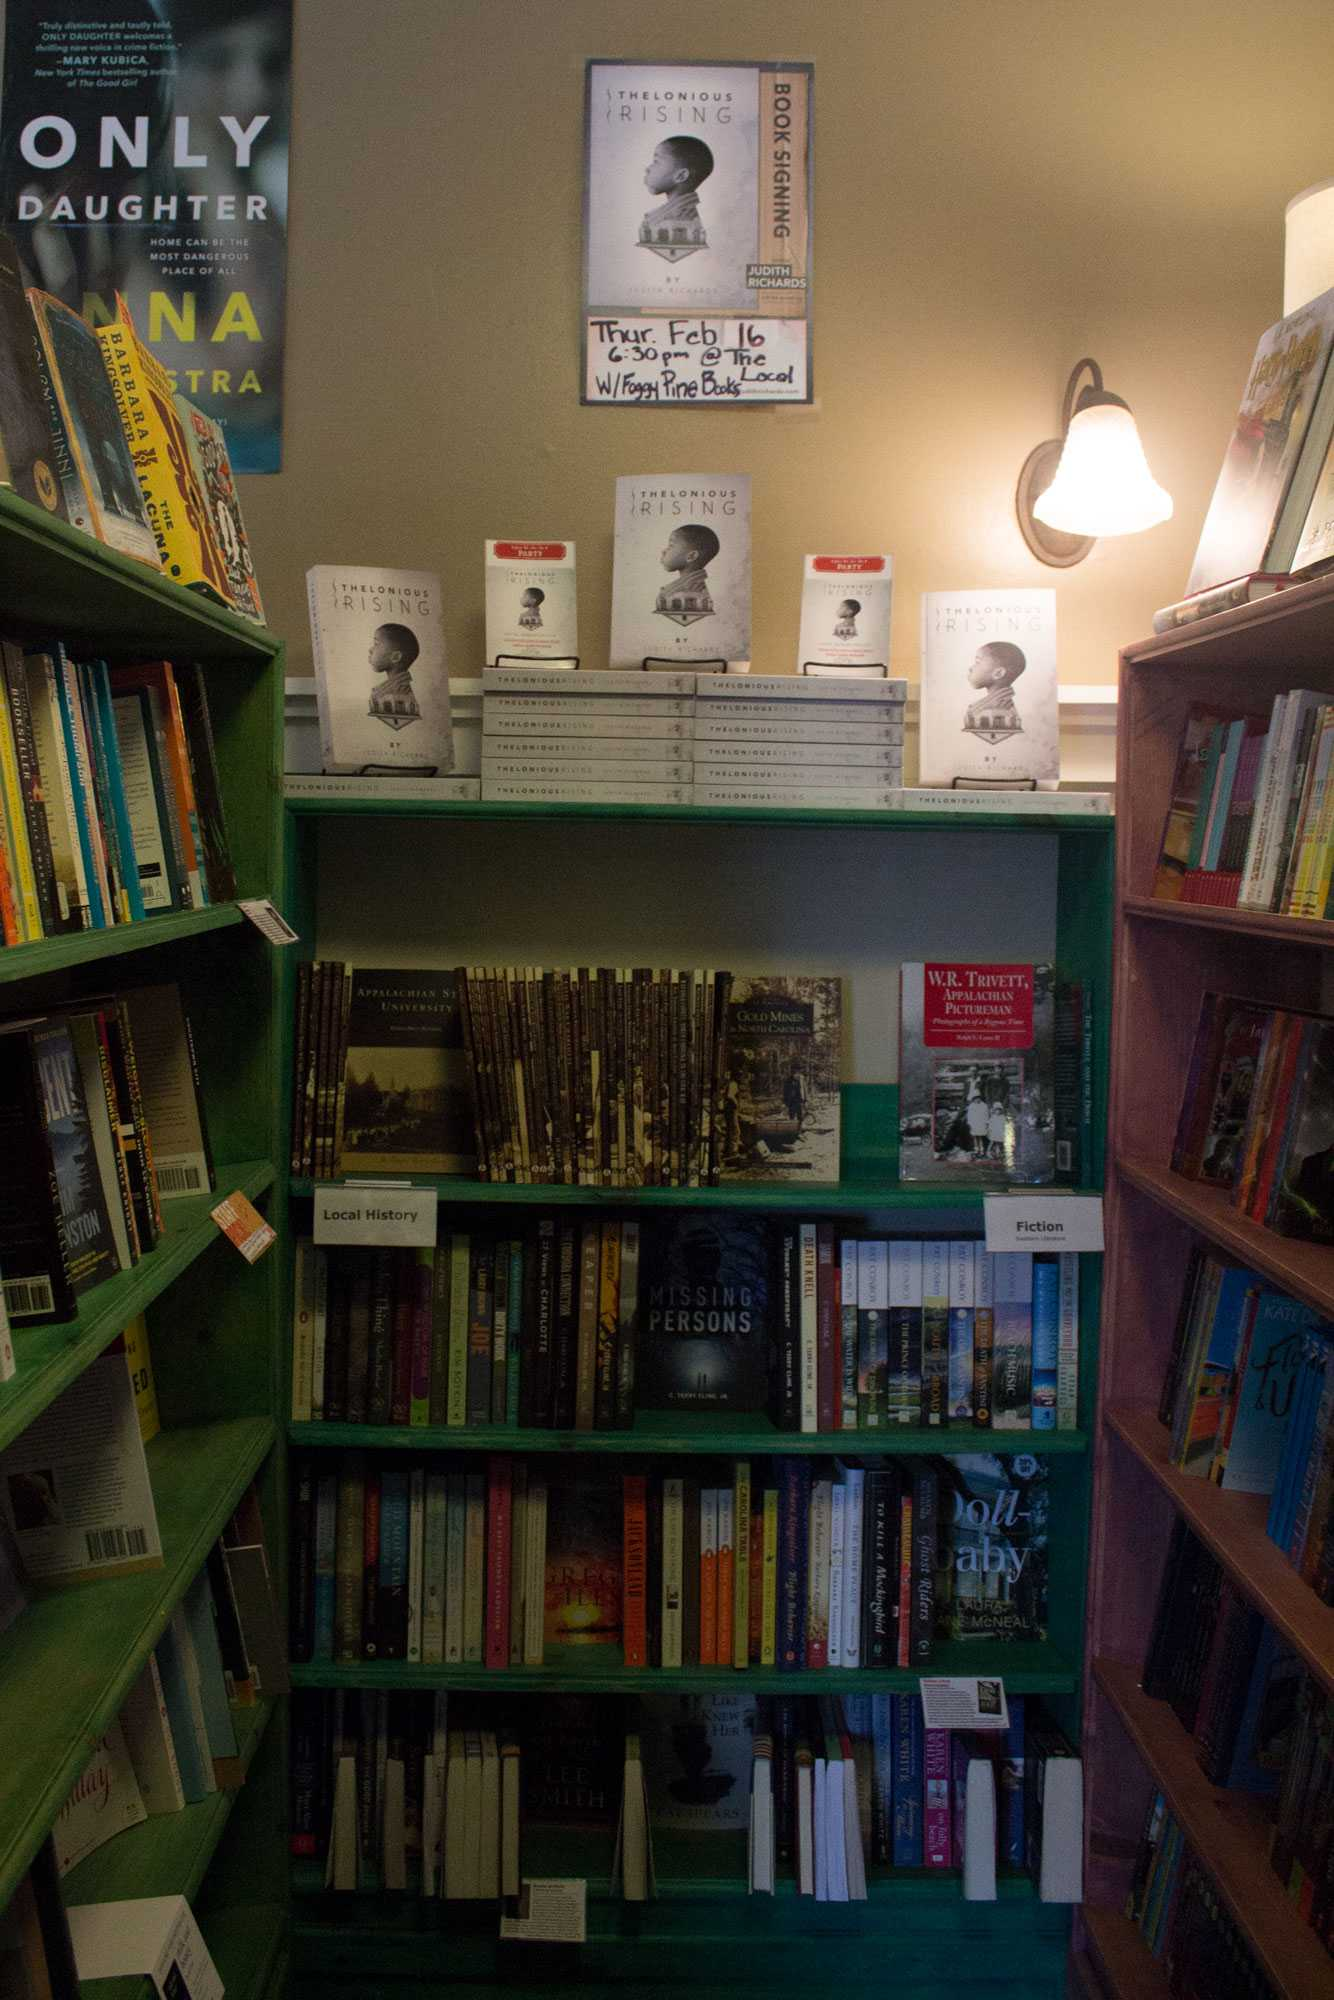 Foggy Pines Bookstore features local authors and their books, and is hosting a book signing on February 16 in conjunction with The Local.